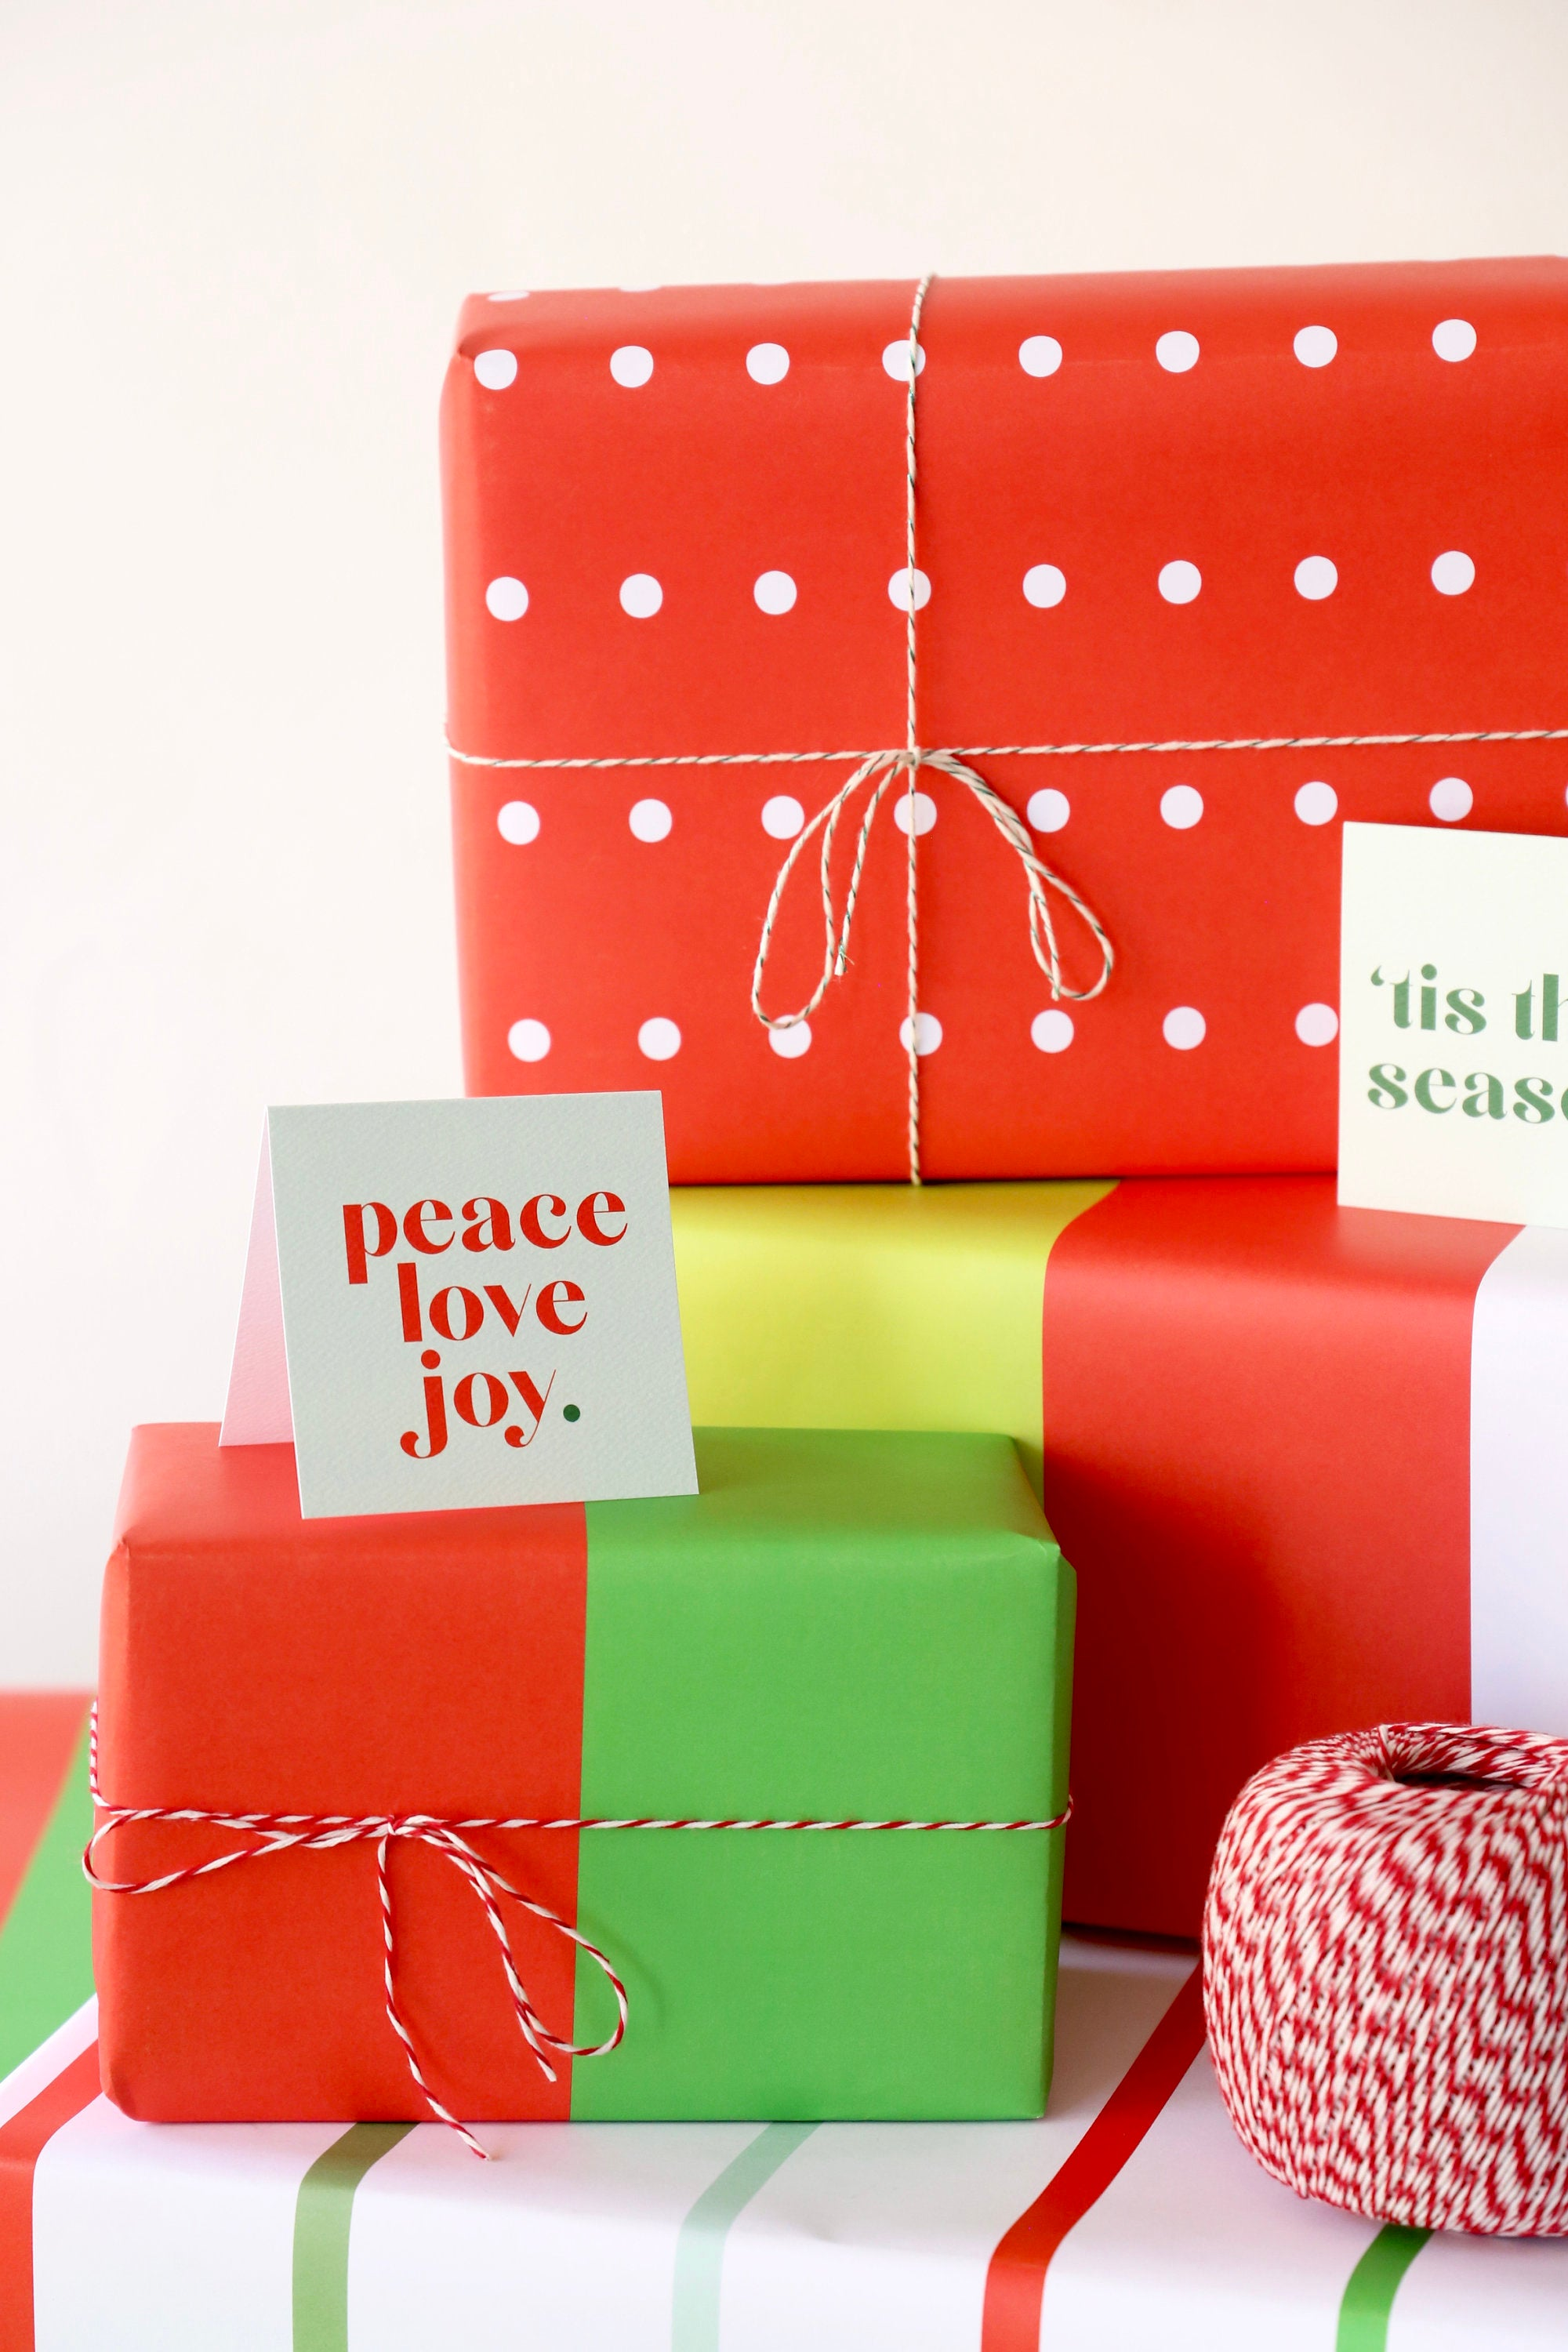 assorted gift wrap and cards